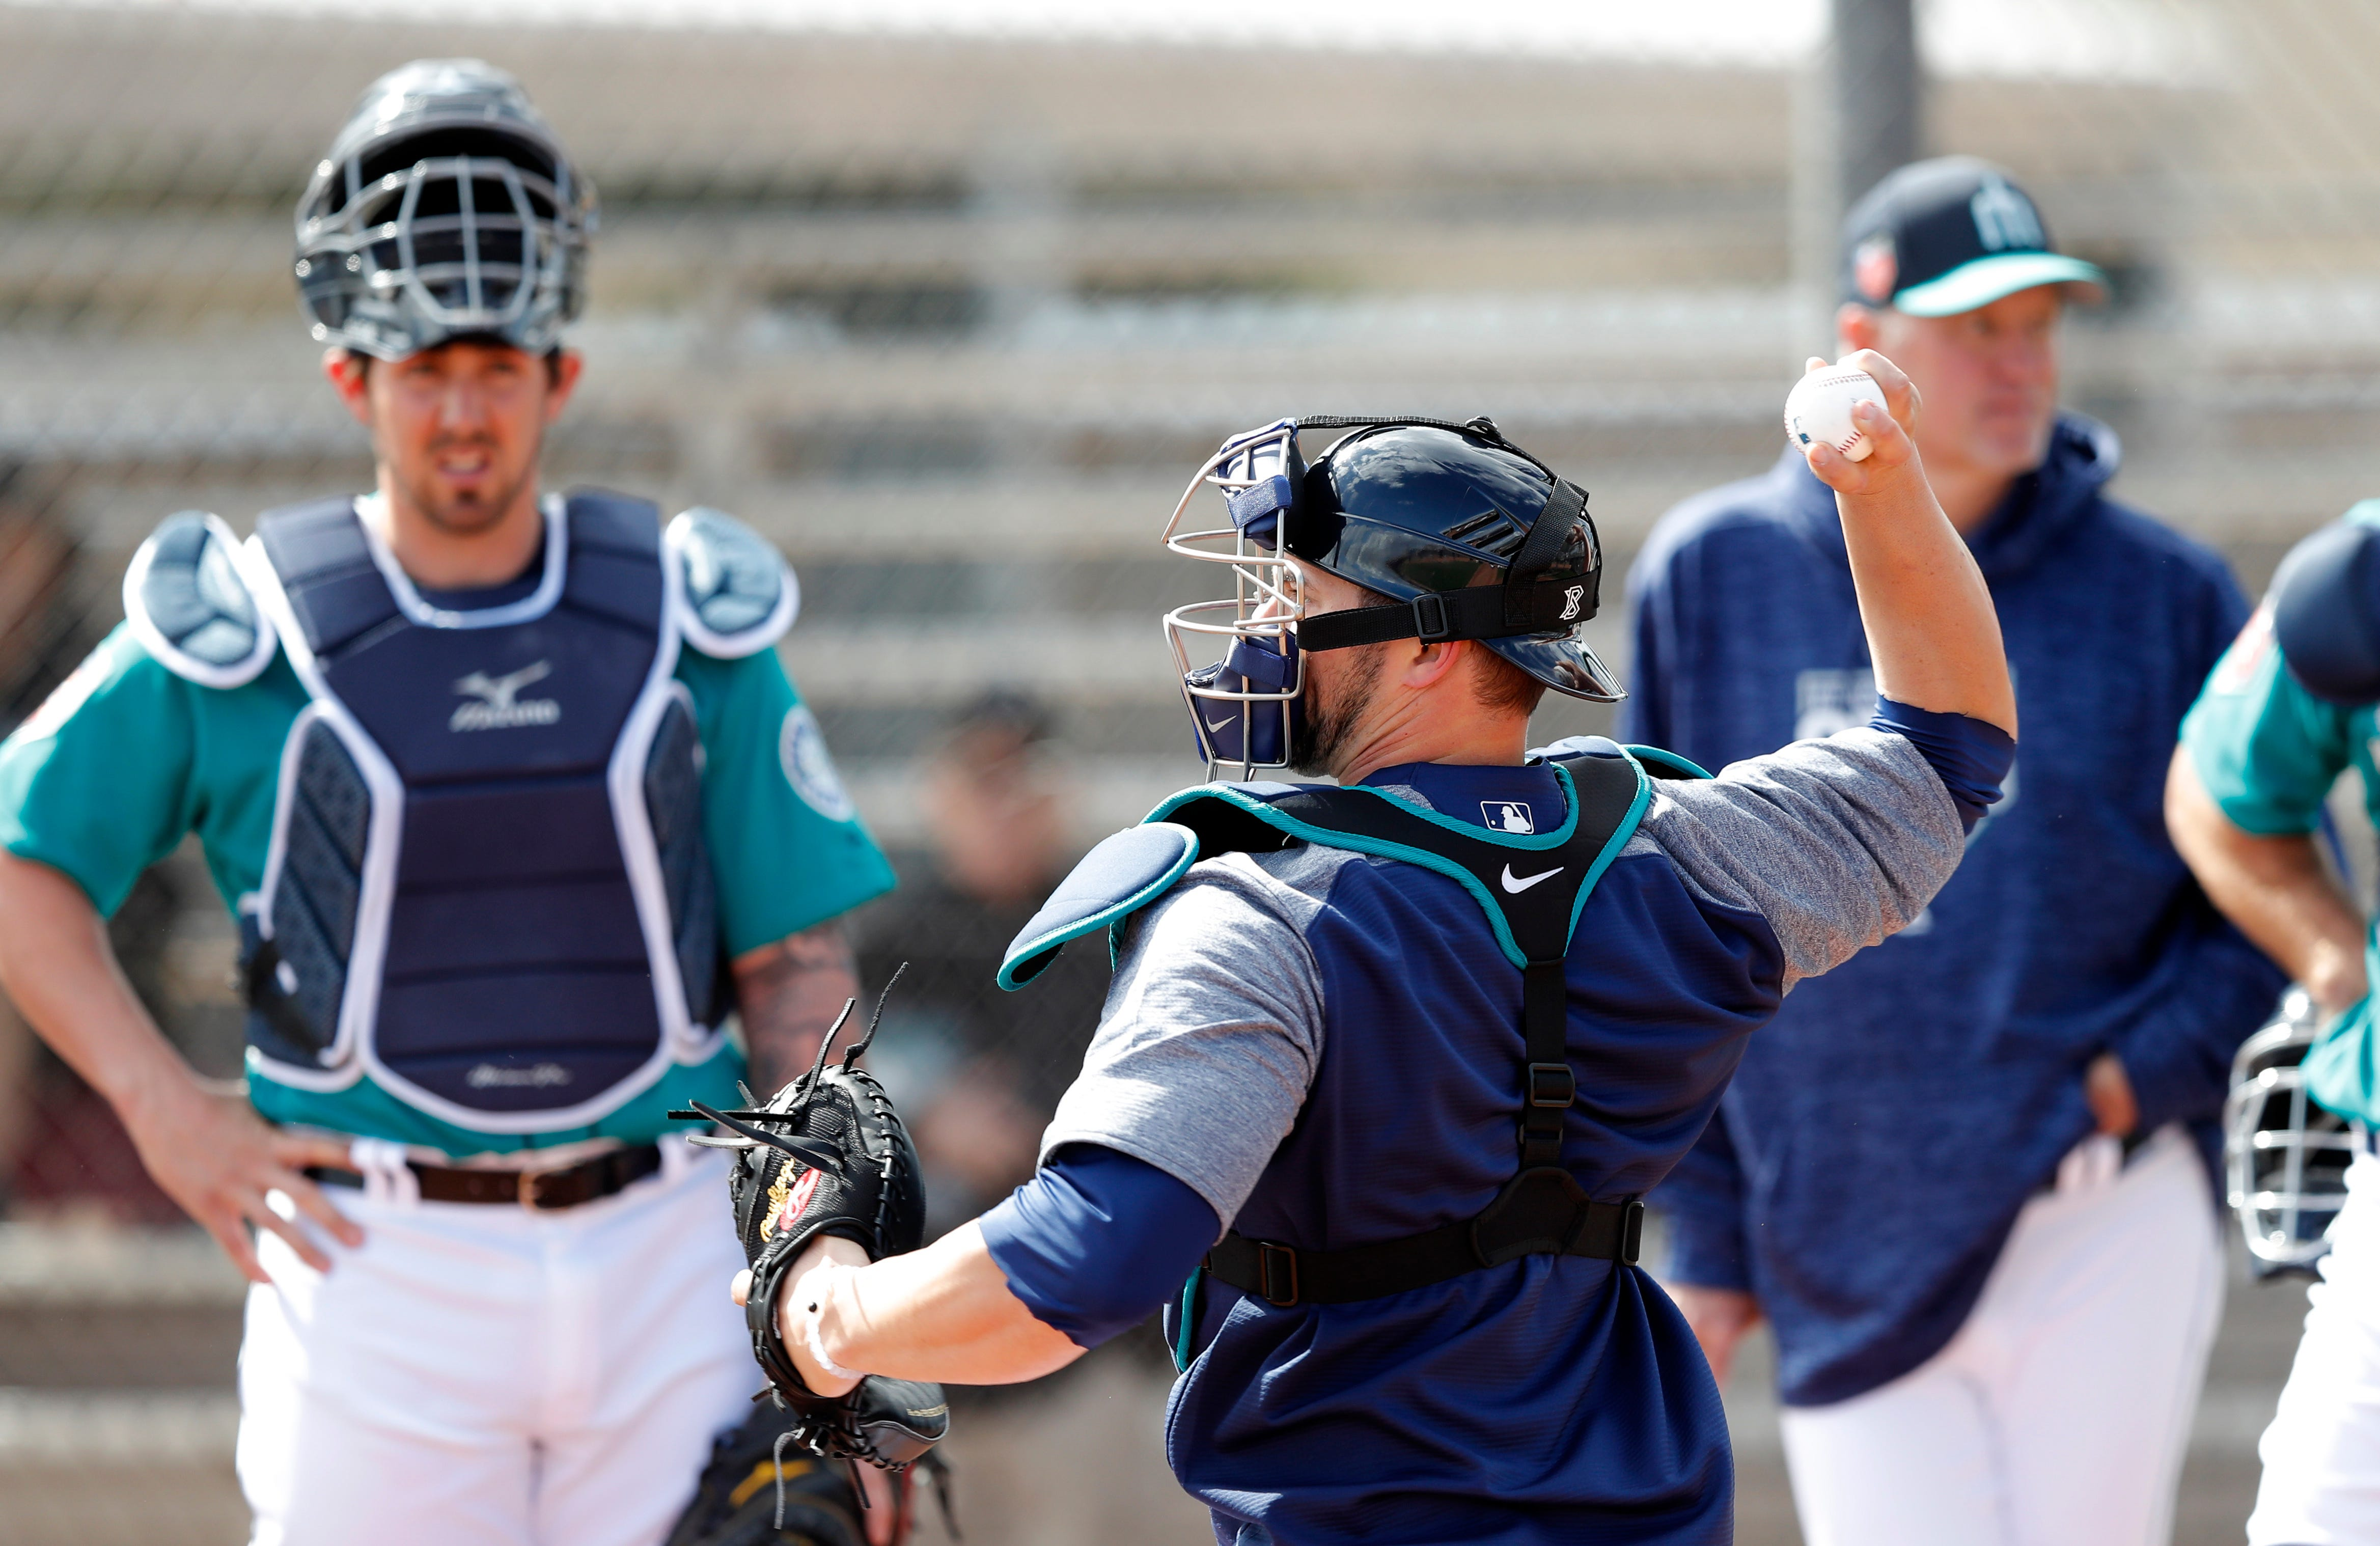 Mariners catcher Mike Zunino grows into major role with team